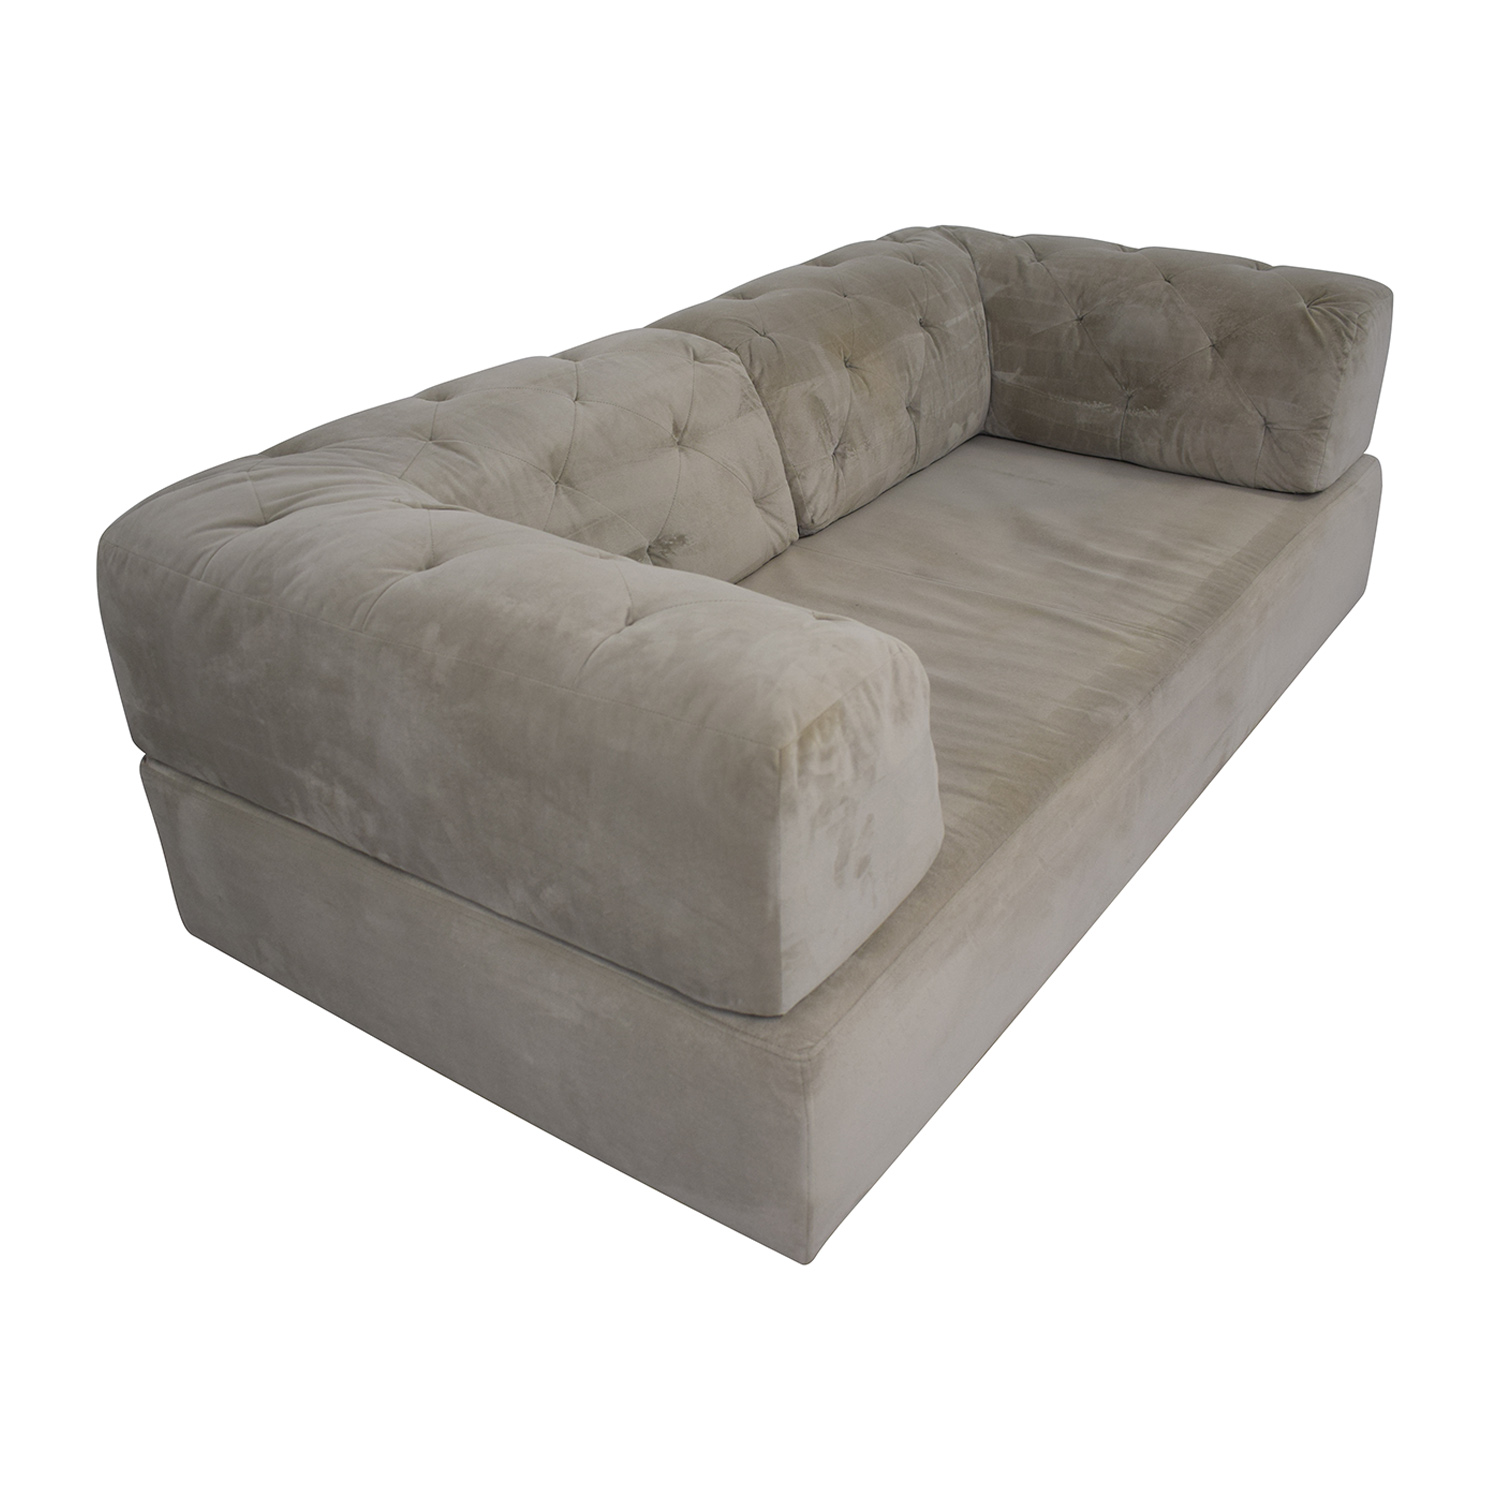 West Elm West Elm Tillary Tufted Sofa with Two Corner Cushions used